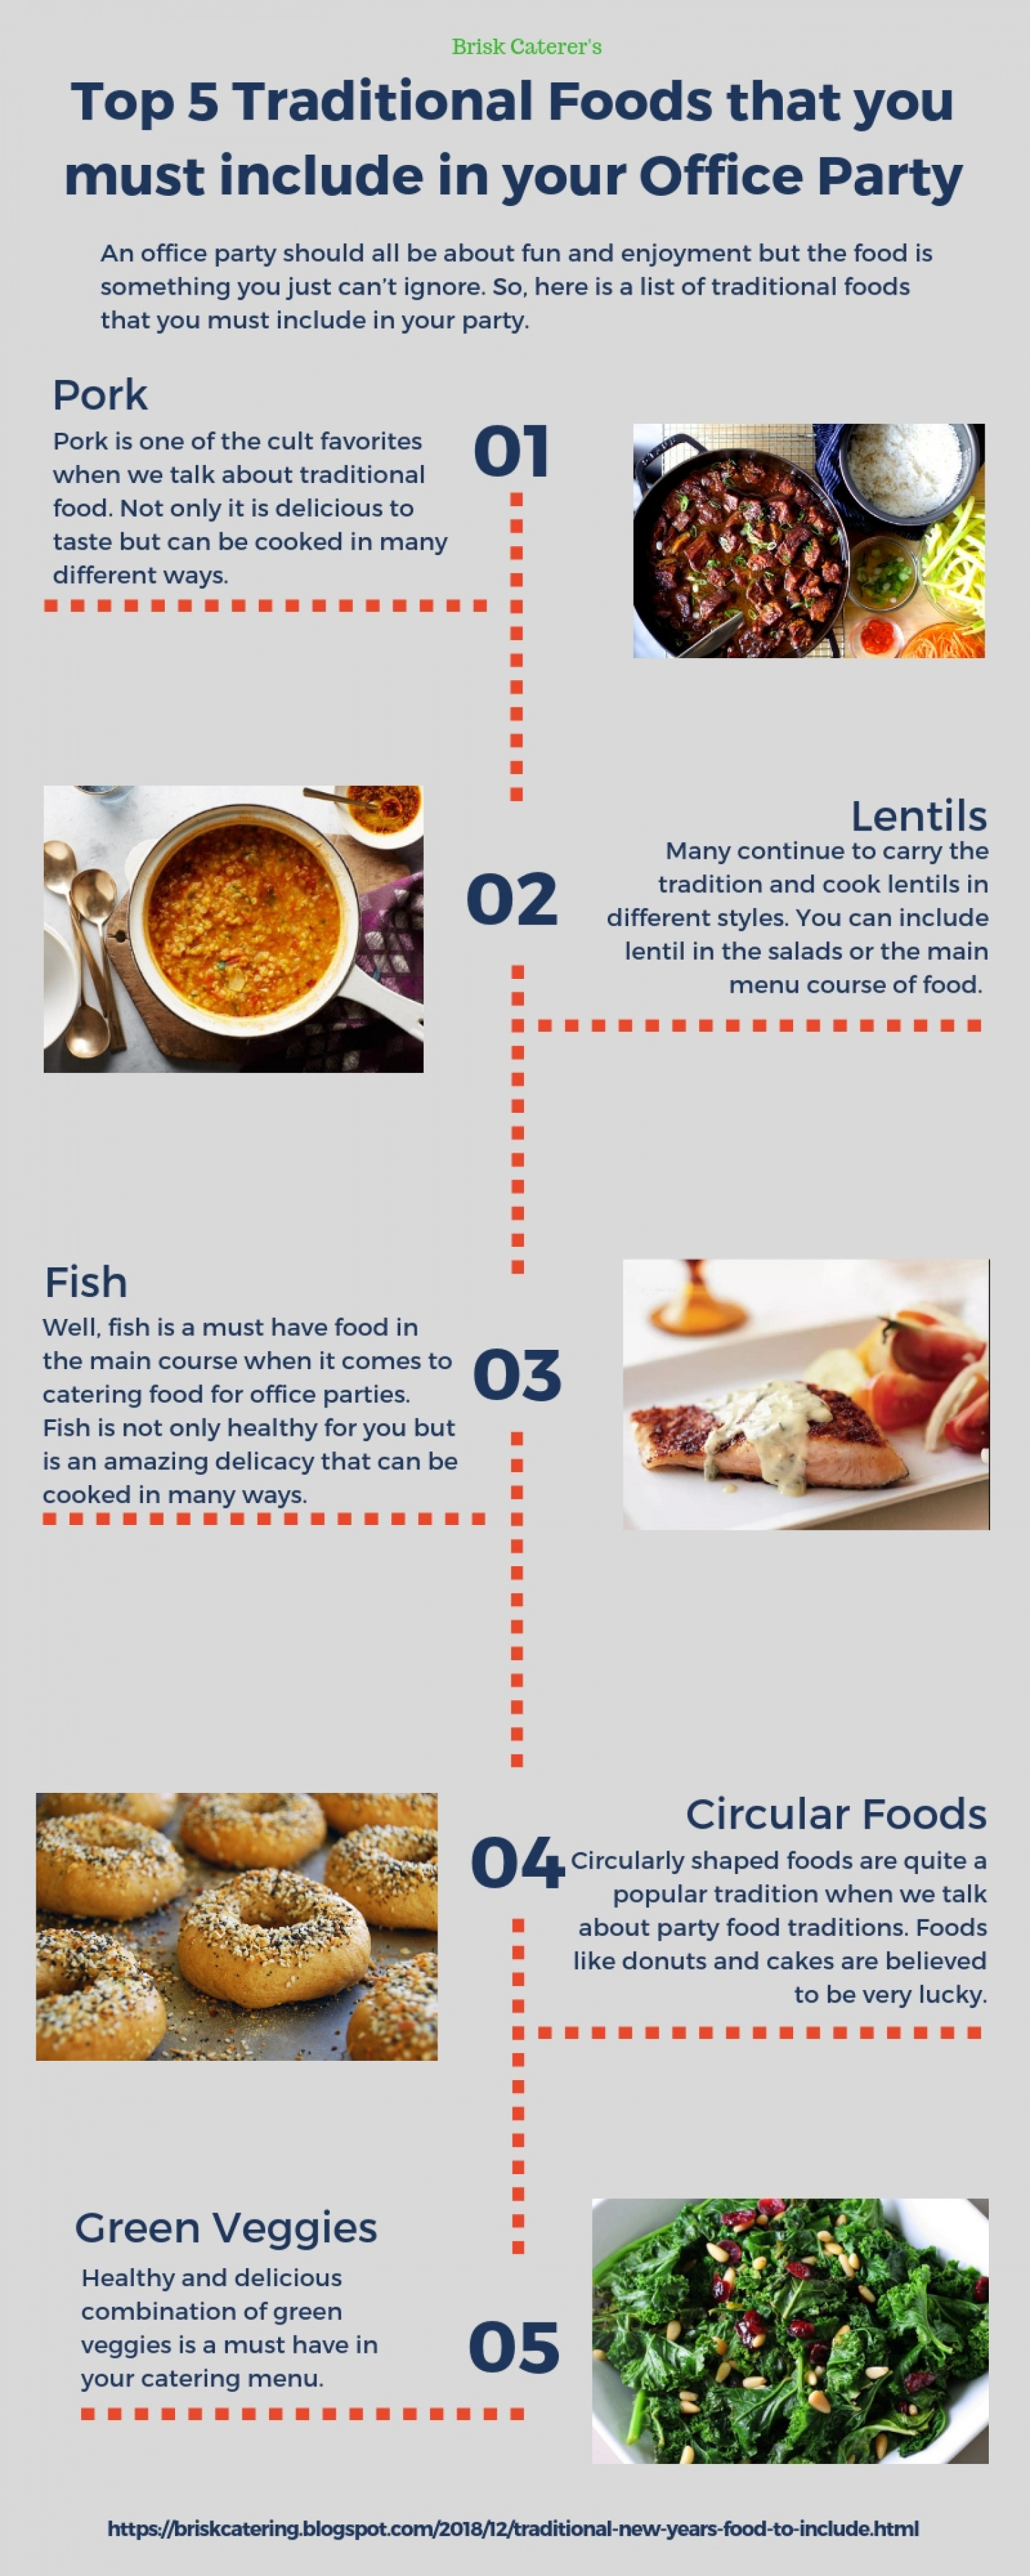 Top 5 Traditional Foods that you must include in your Office Party Infographic